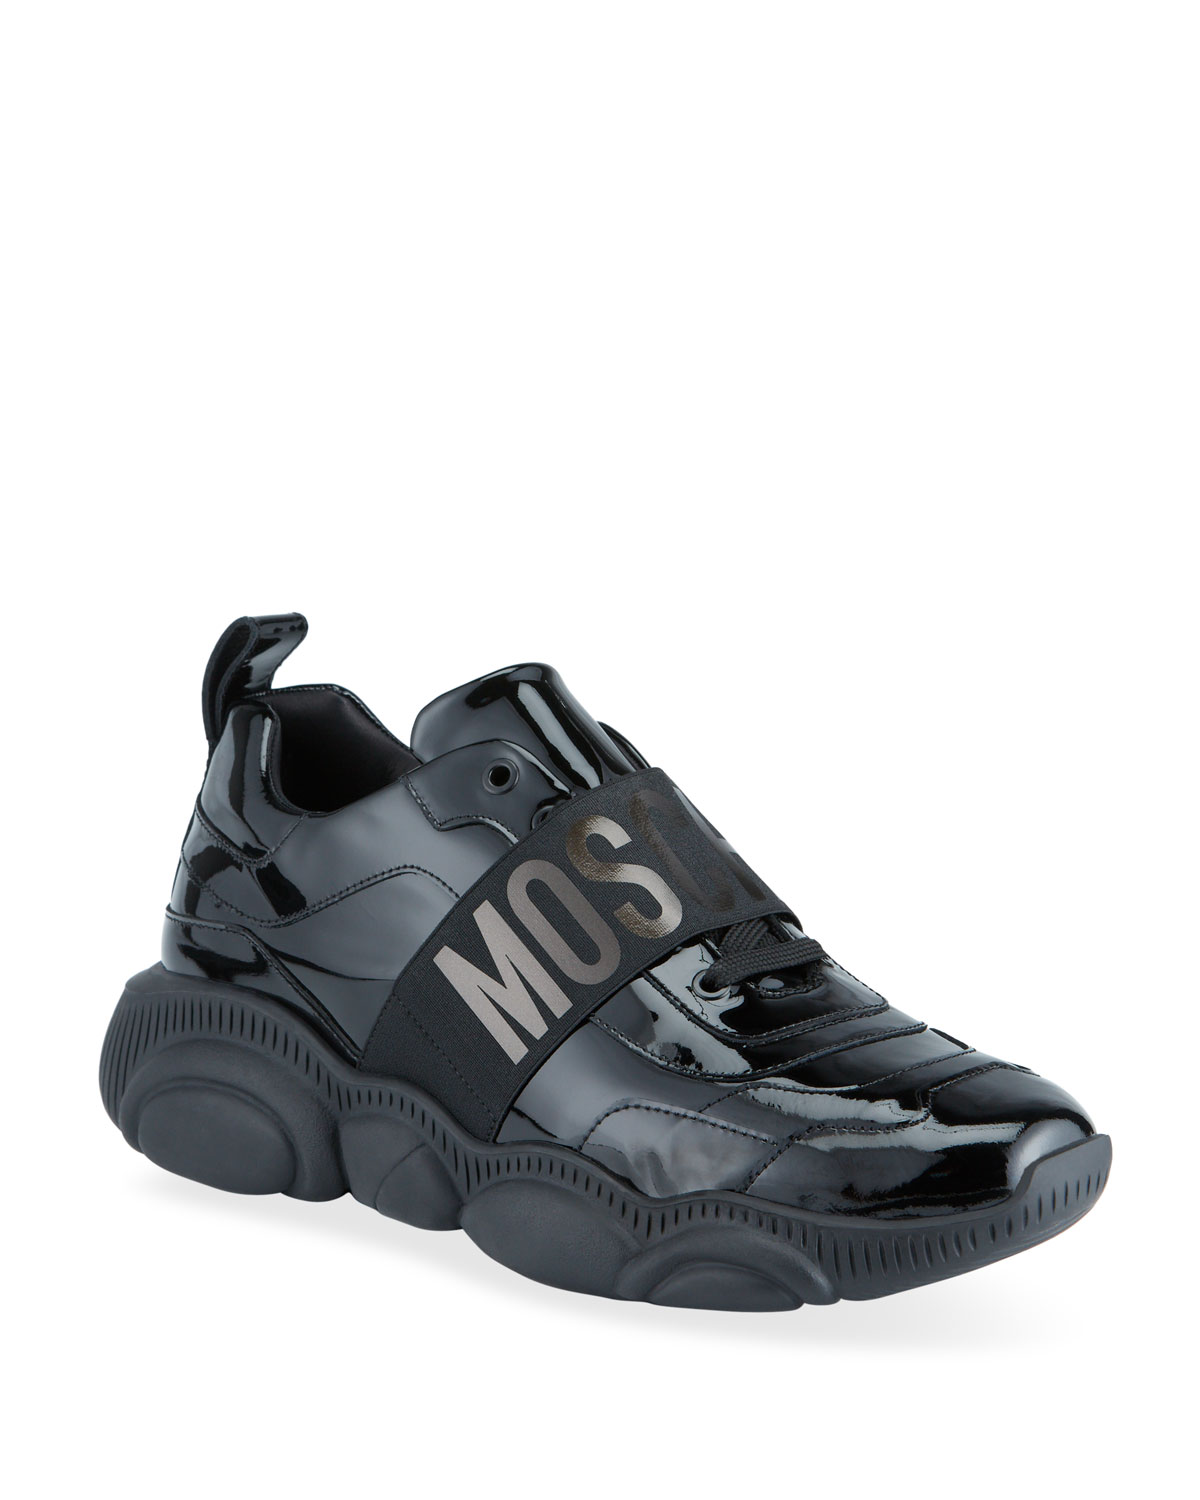 Moschino MEN'S PATENT LEATHER CHUNKY SNEAKERS WITH LOGO STRAP